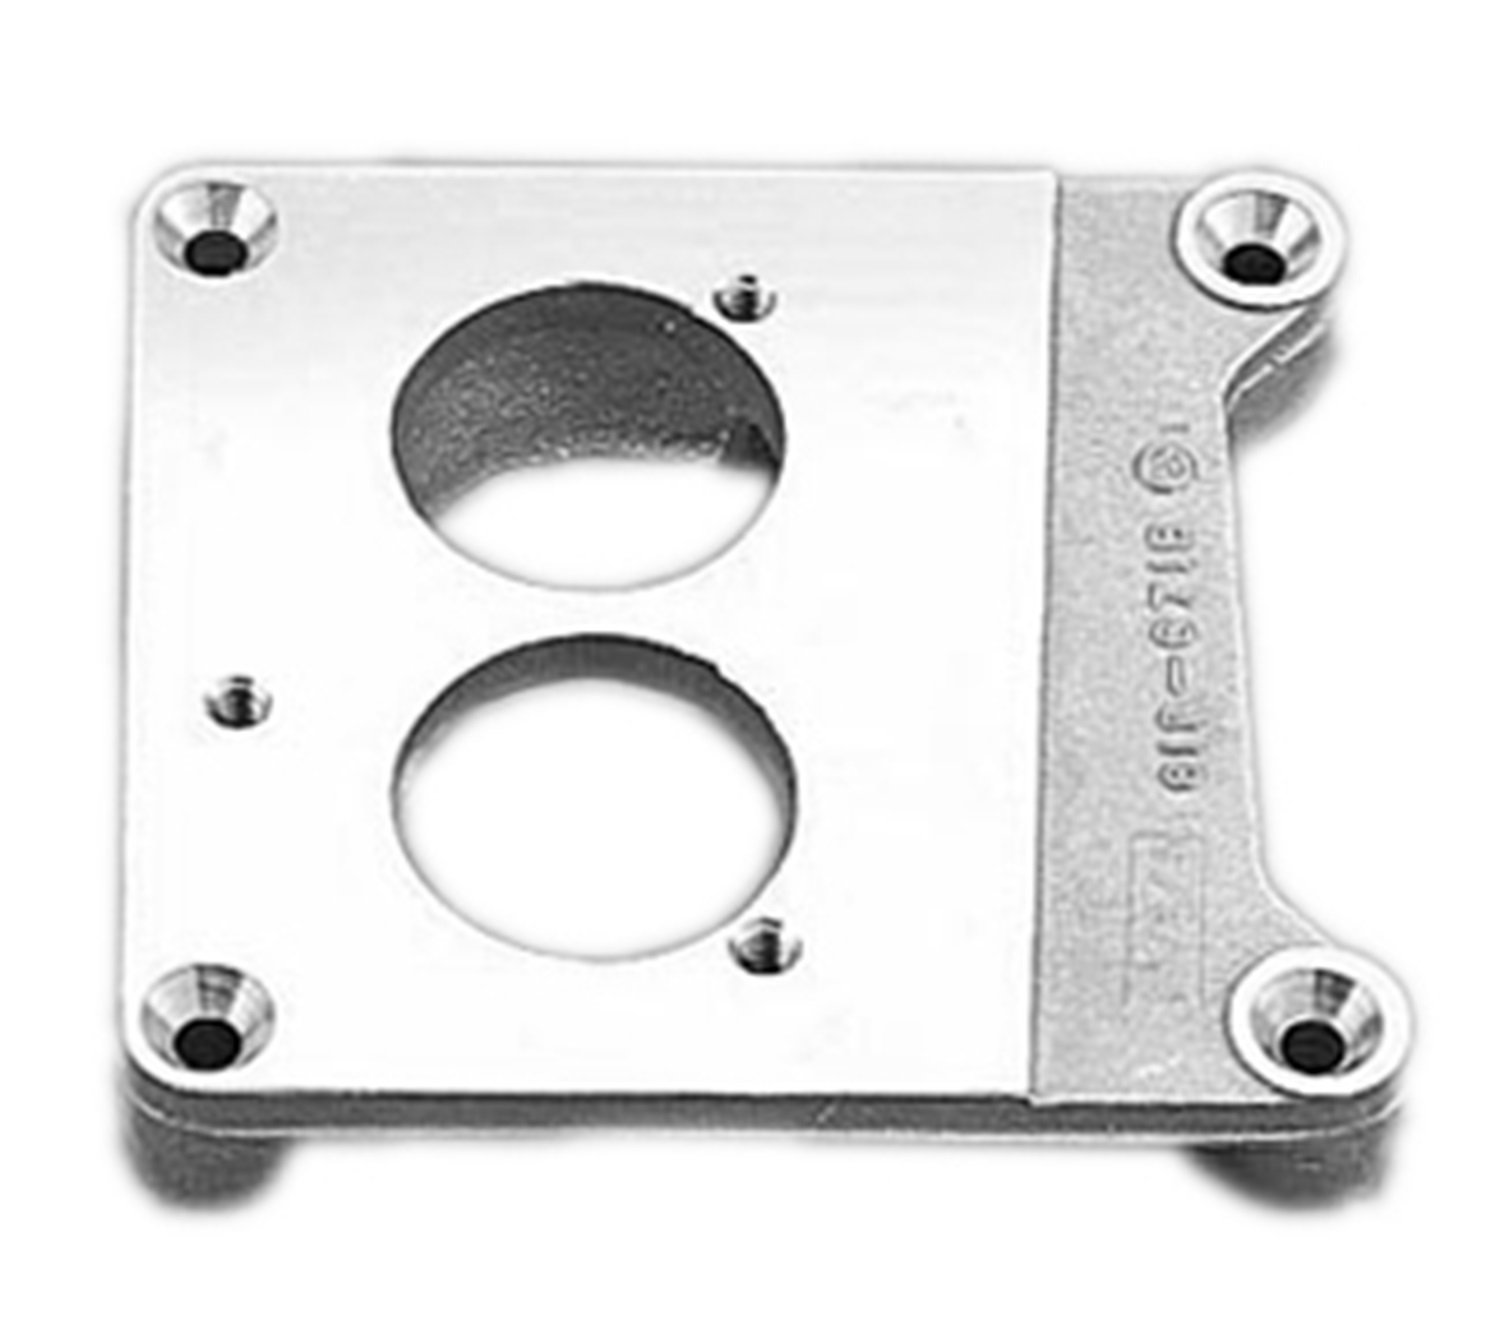 Holley 17-45 Throttle Body Injection Adaptor